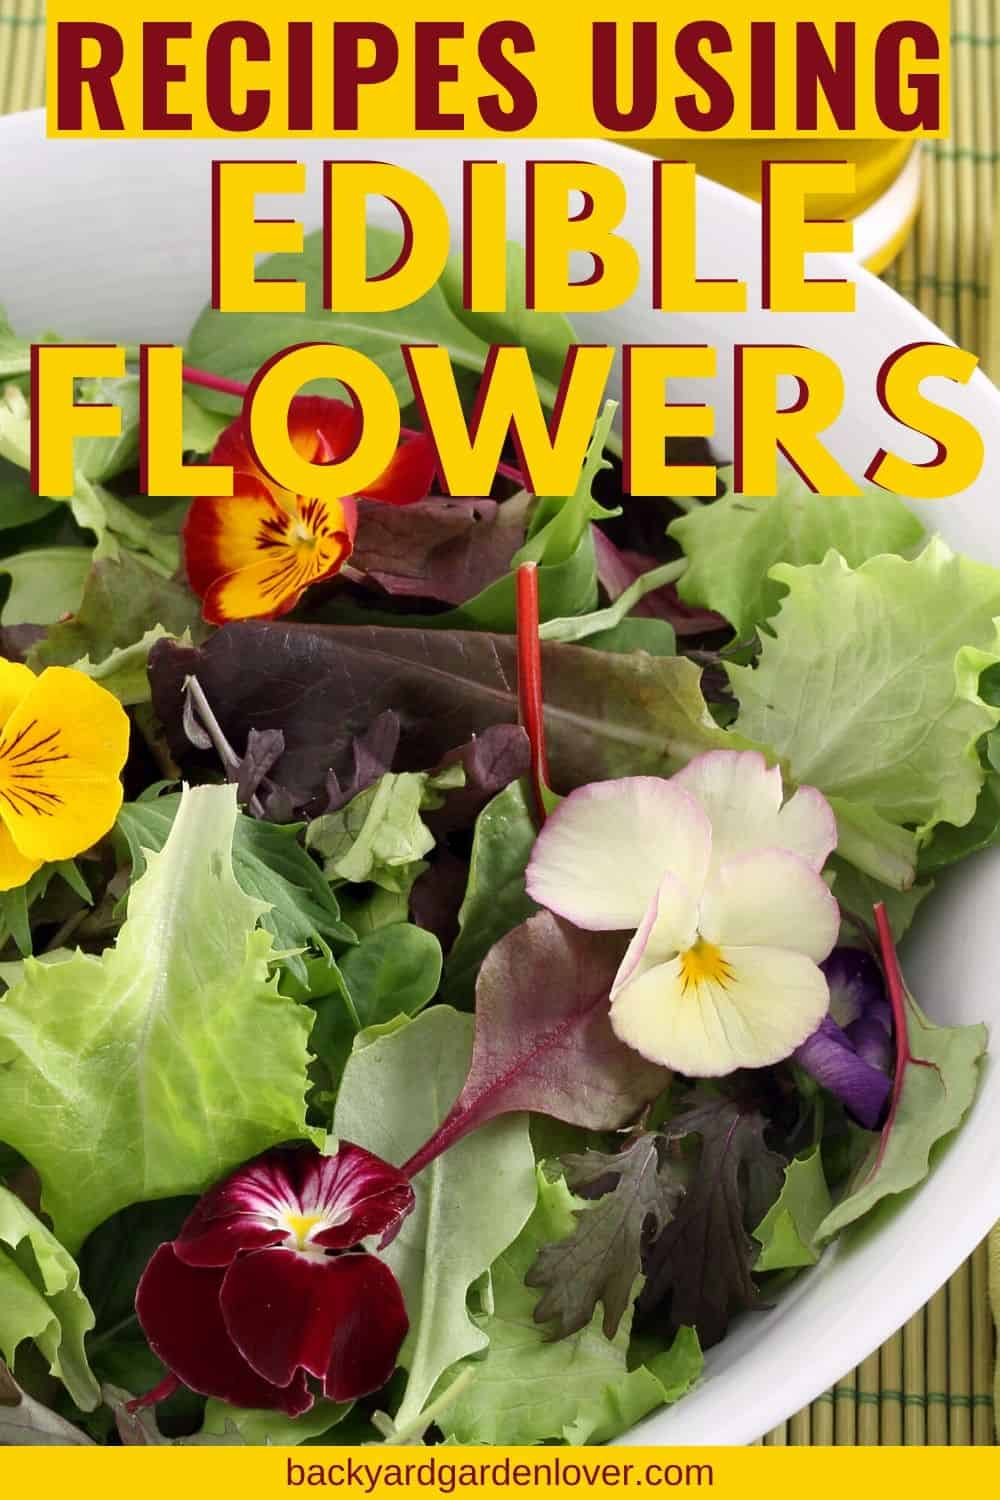 Recipes using edible flowers poster